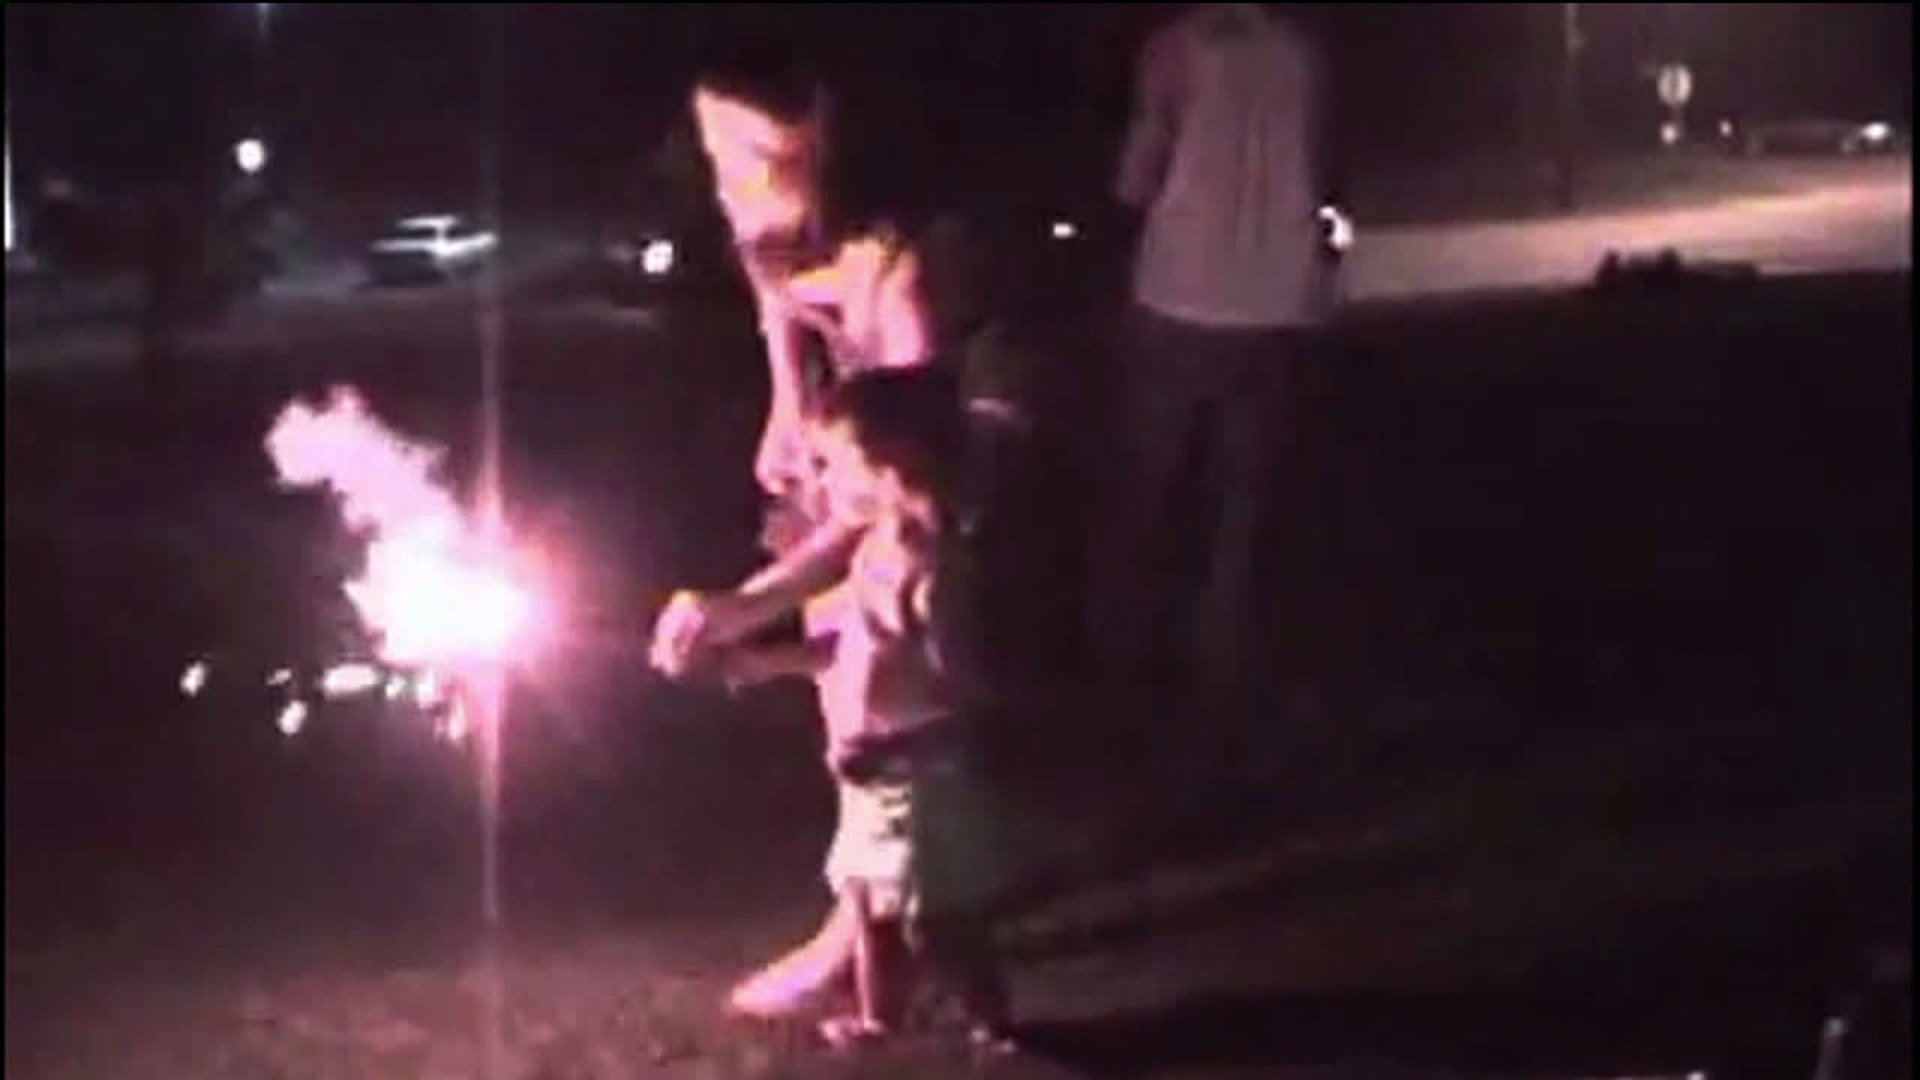 Child with a sparkler